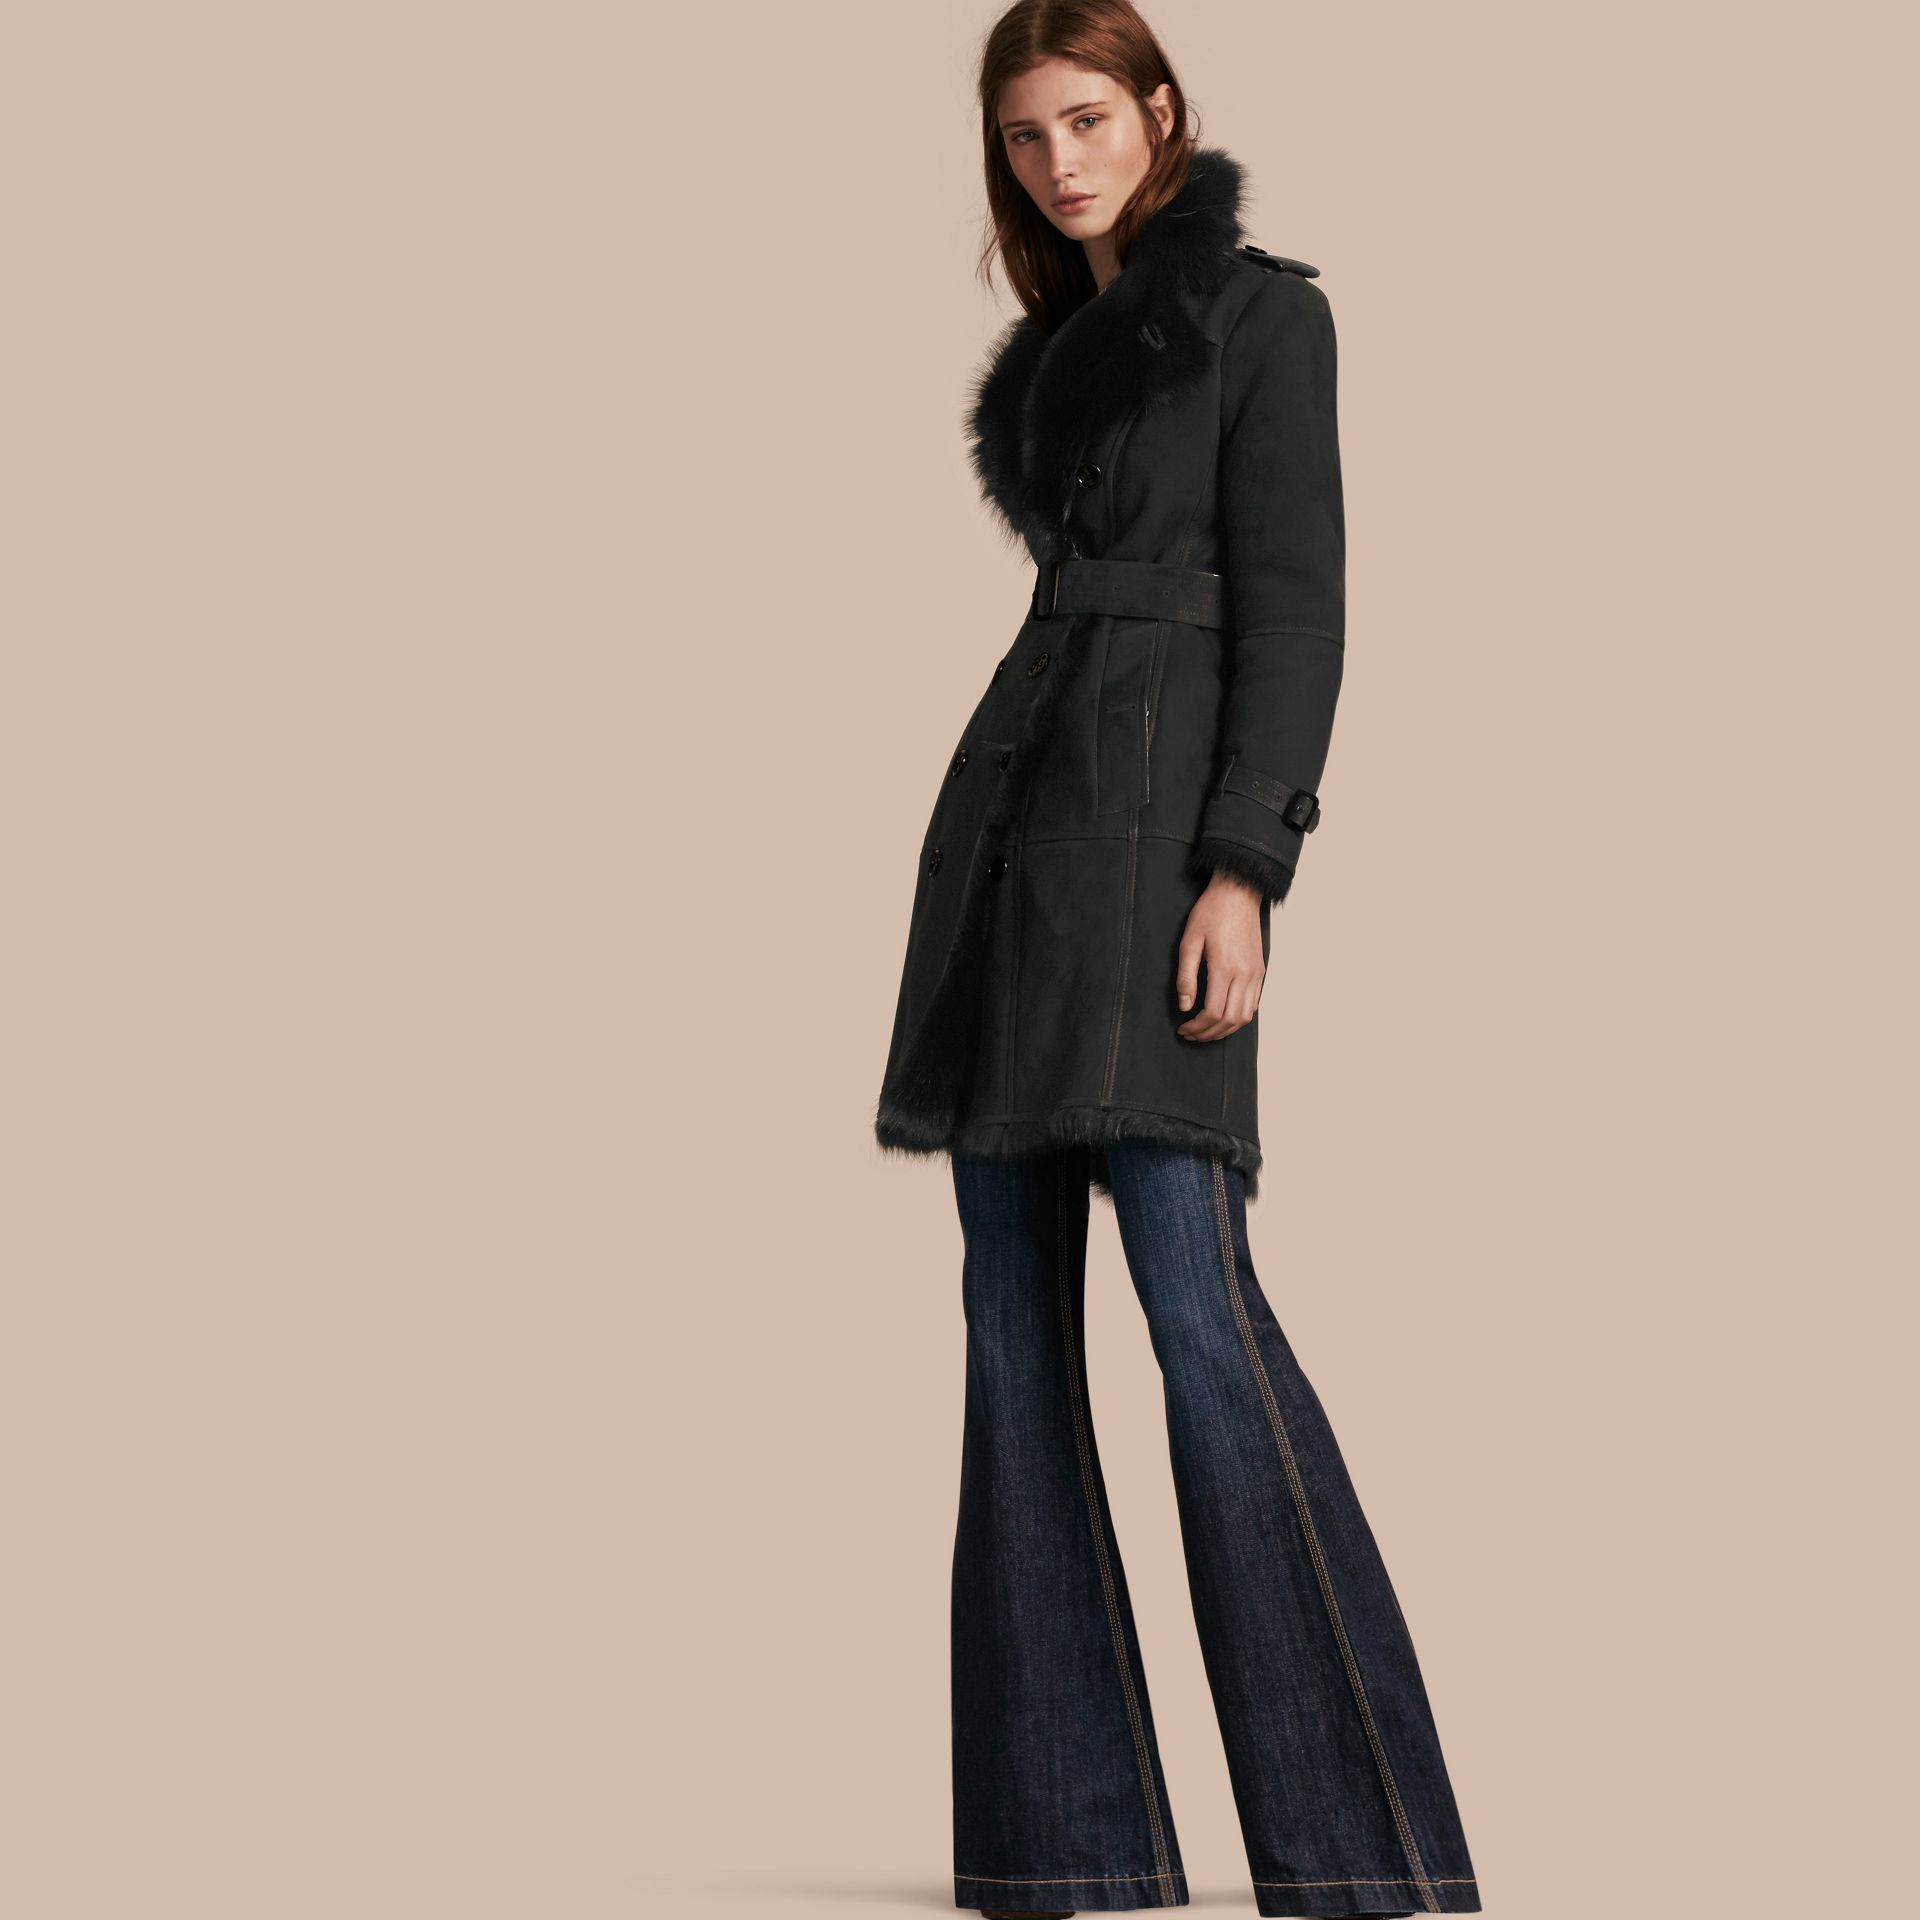 Black Shearling Trench Coat Black - gallery image 1